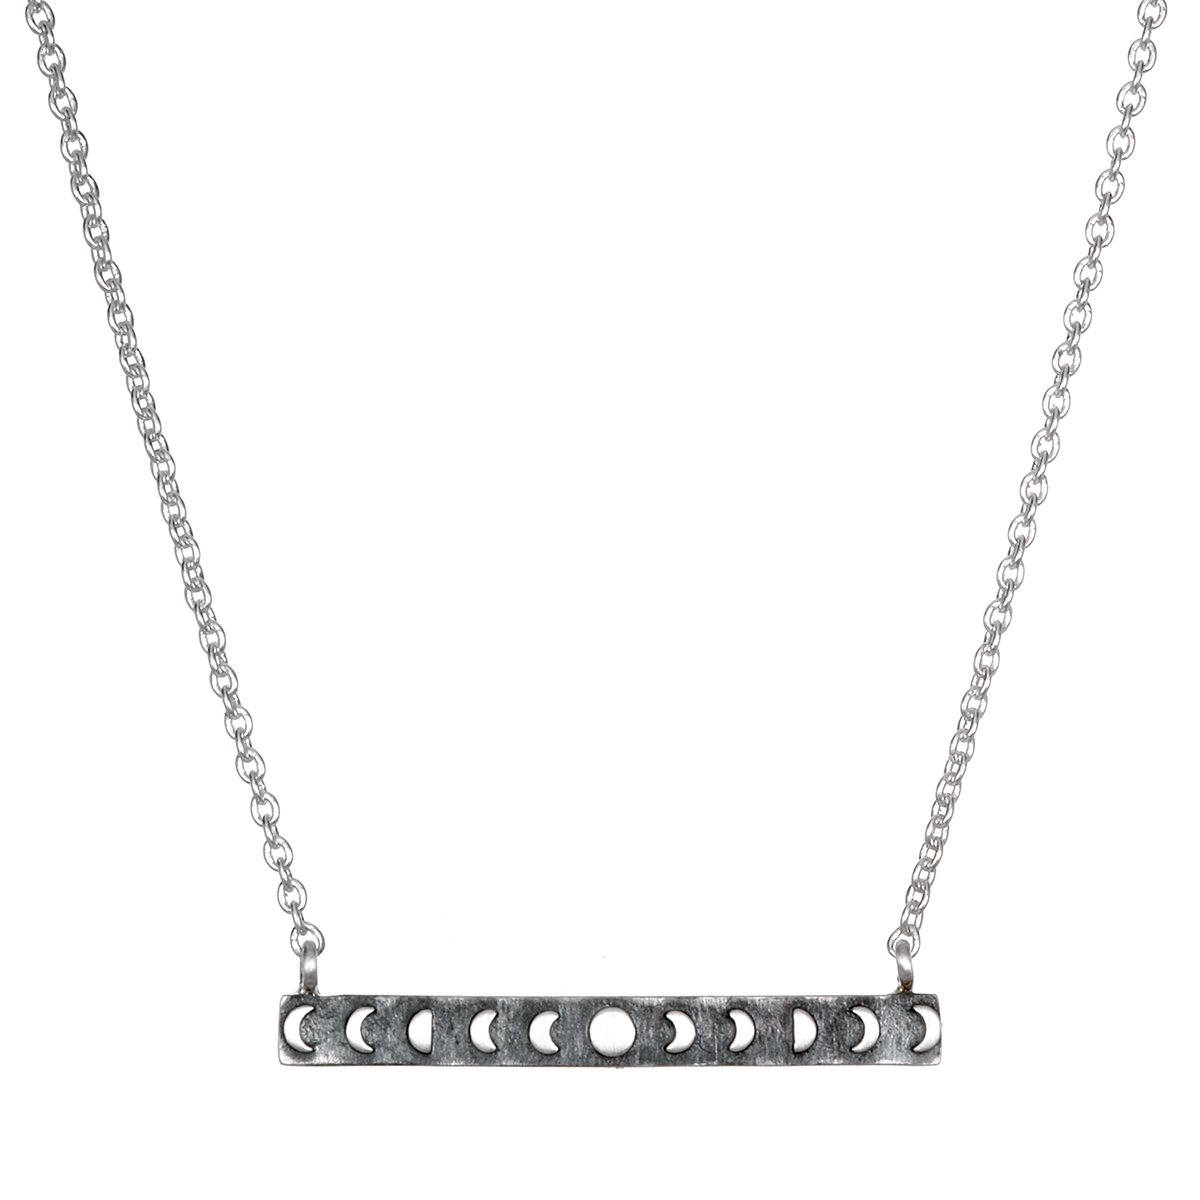 Satya Jewelry Sterling Silver Moon Phase Bar (18-Inch) Pendant Necklace